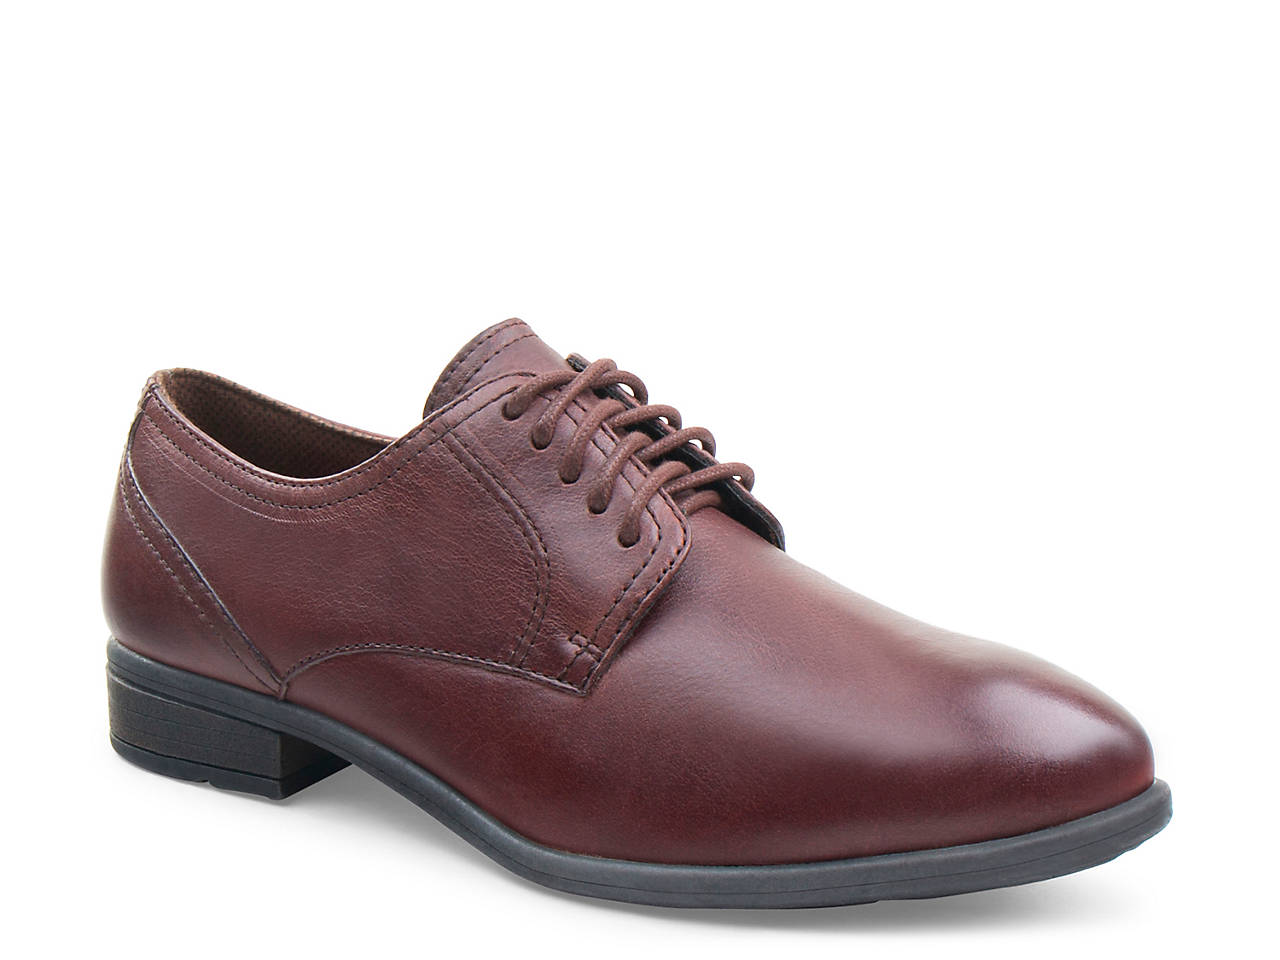 Fashion style Shoes eastland for woman